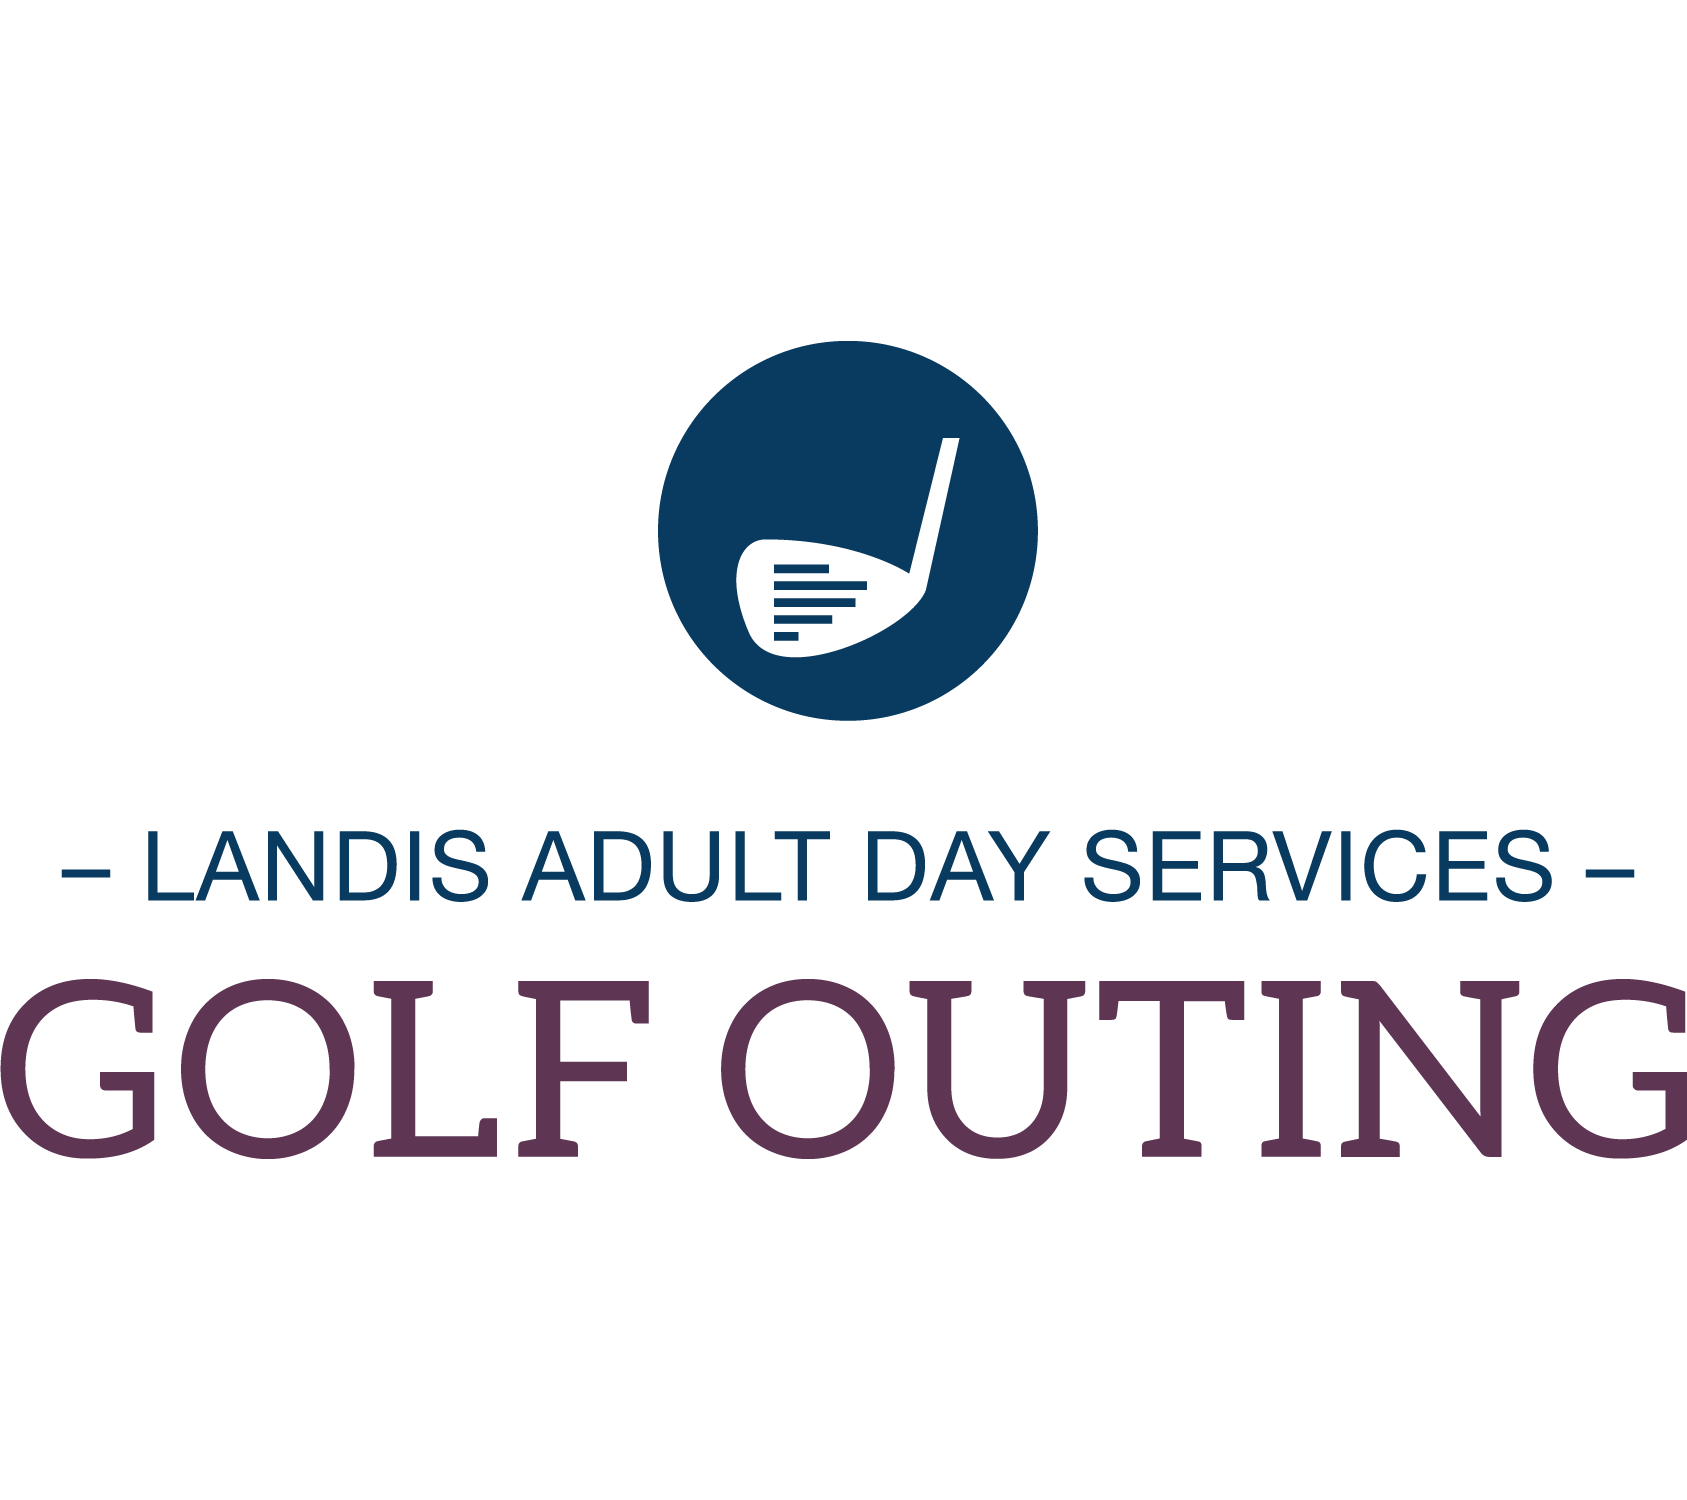 Landis Adult Day Services 30th Annual Golf Outing